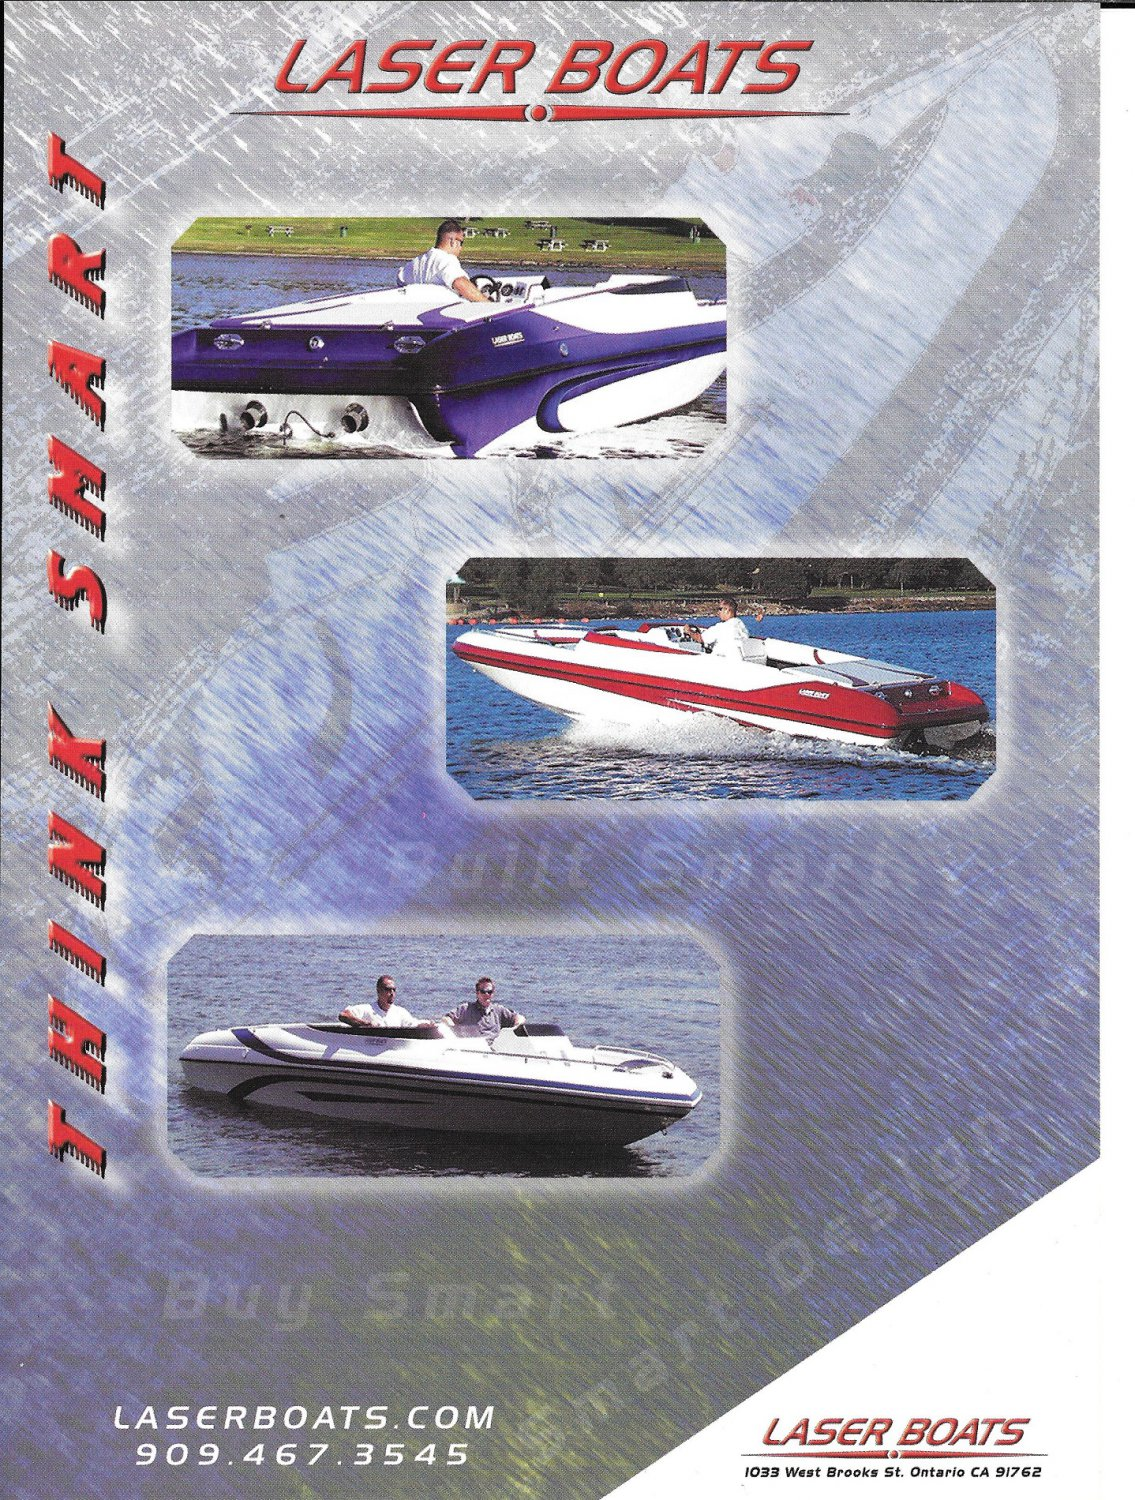 2002 Laser Boats Color Ad- Nice Photo of 3 Models